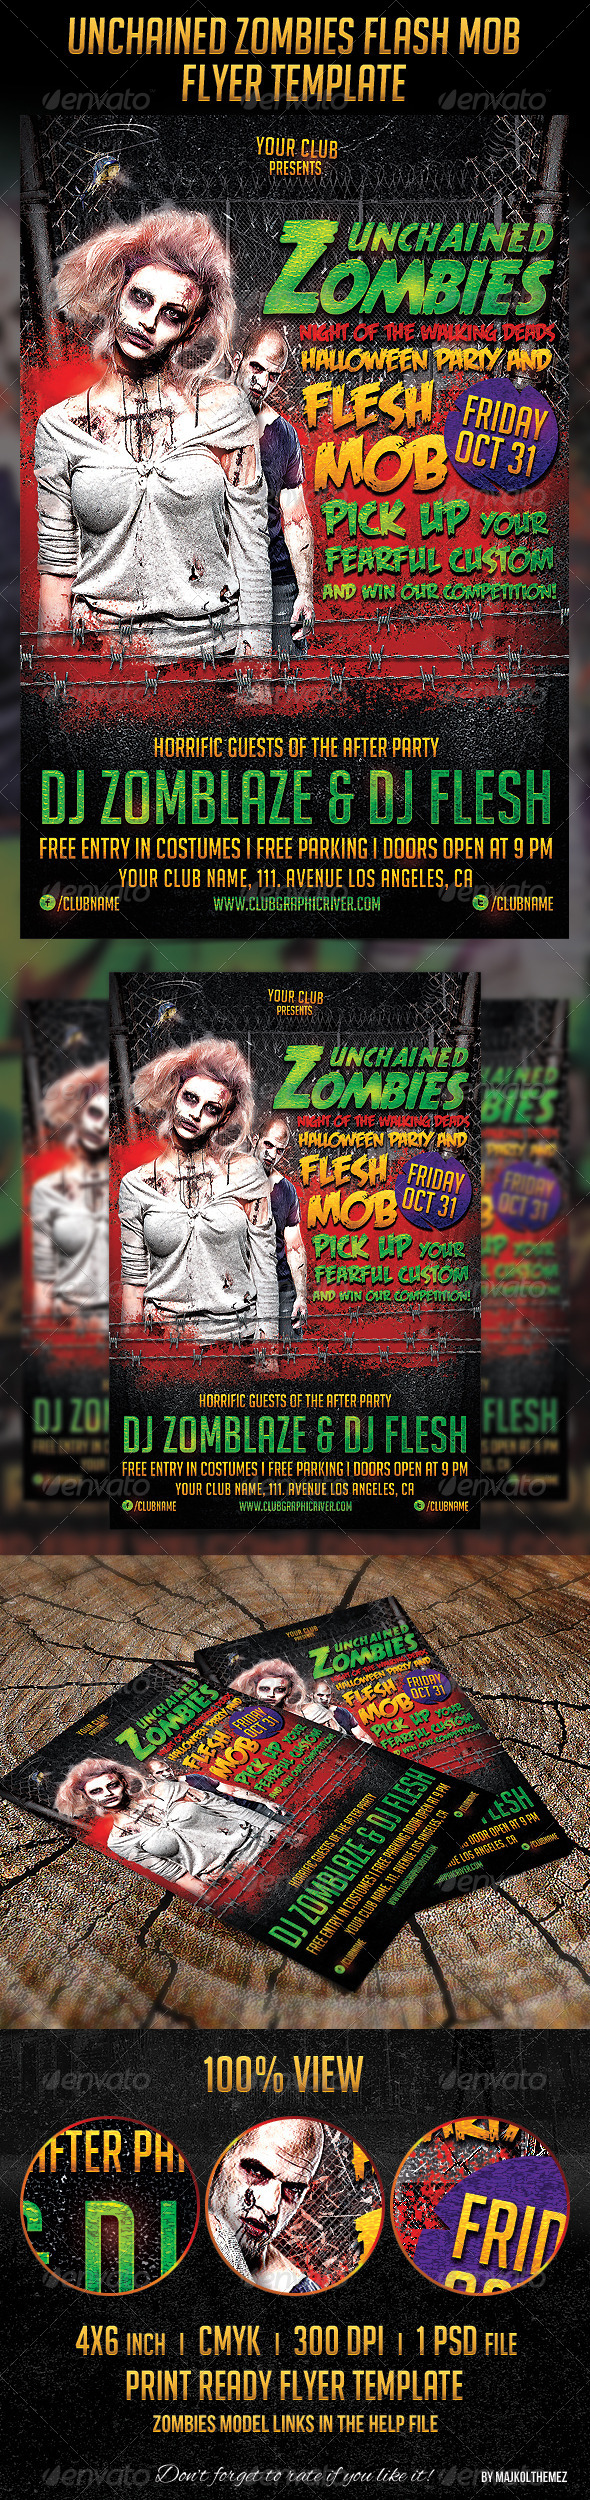 GraphicRiver Unchained Zombies Flash Mob Party Flyer 5755920